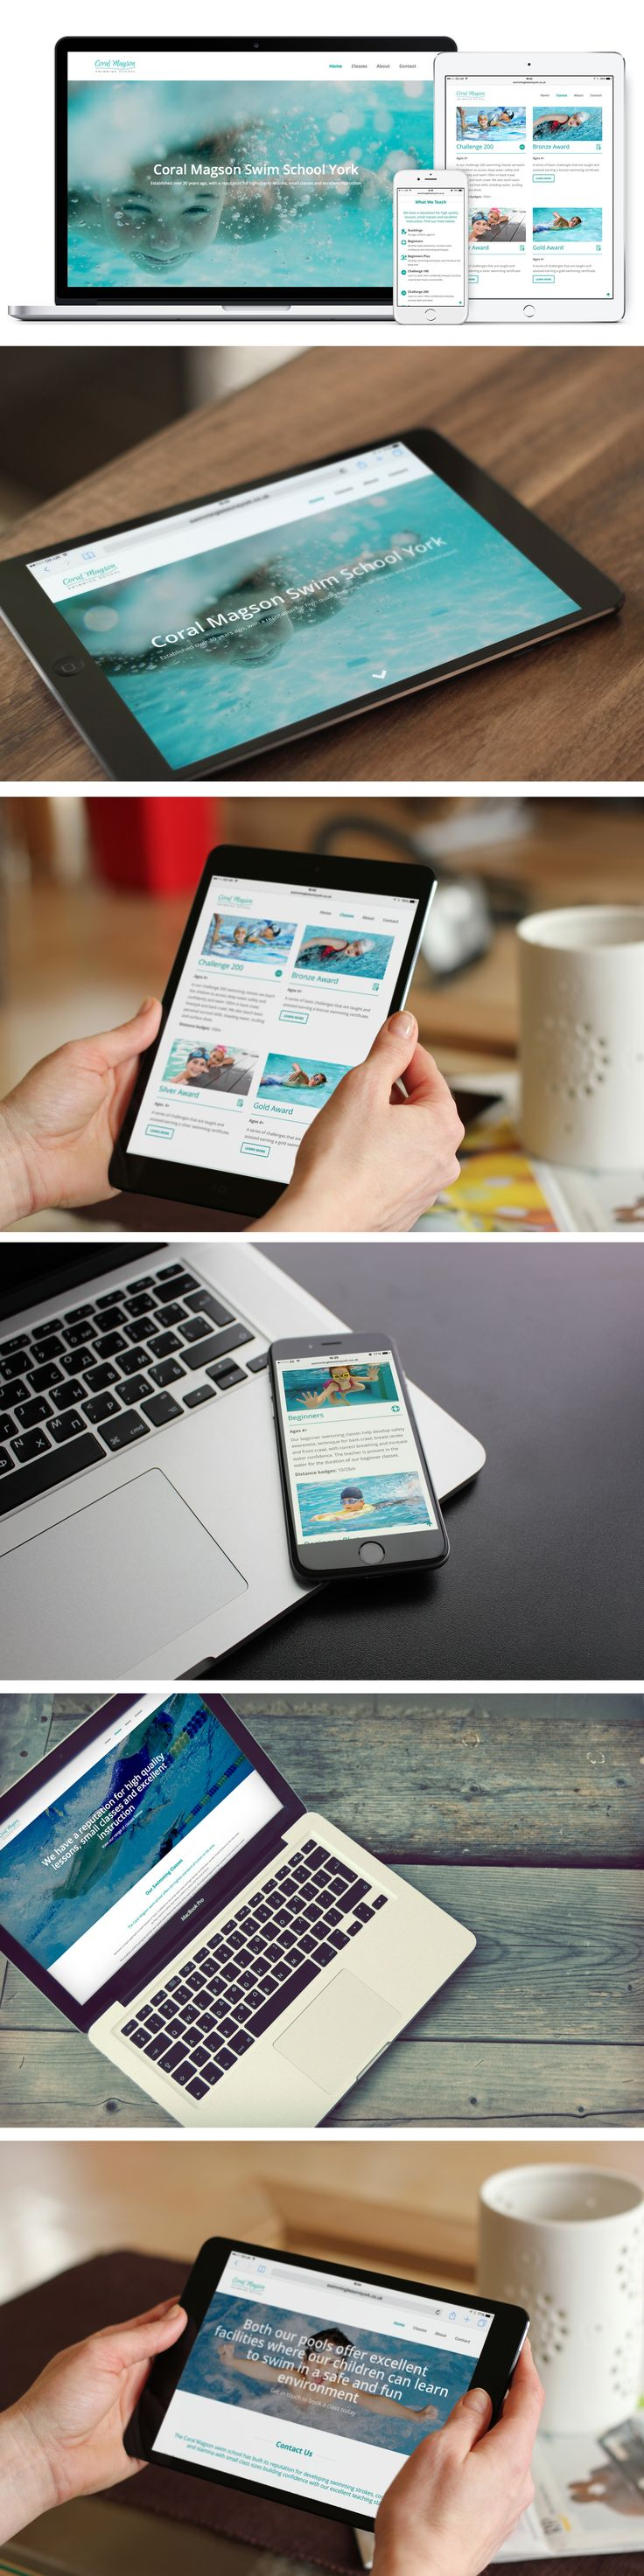 We're proud to announce our latest website design & brand project. Check it out here http://swimminglessonsyork.co.uk or read our case study here http://ignitedesign.co.uk/portfolio-item/coral-magson-swim-school/. Let us know what you think!